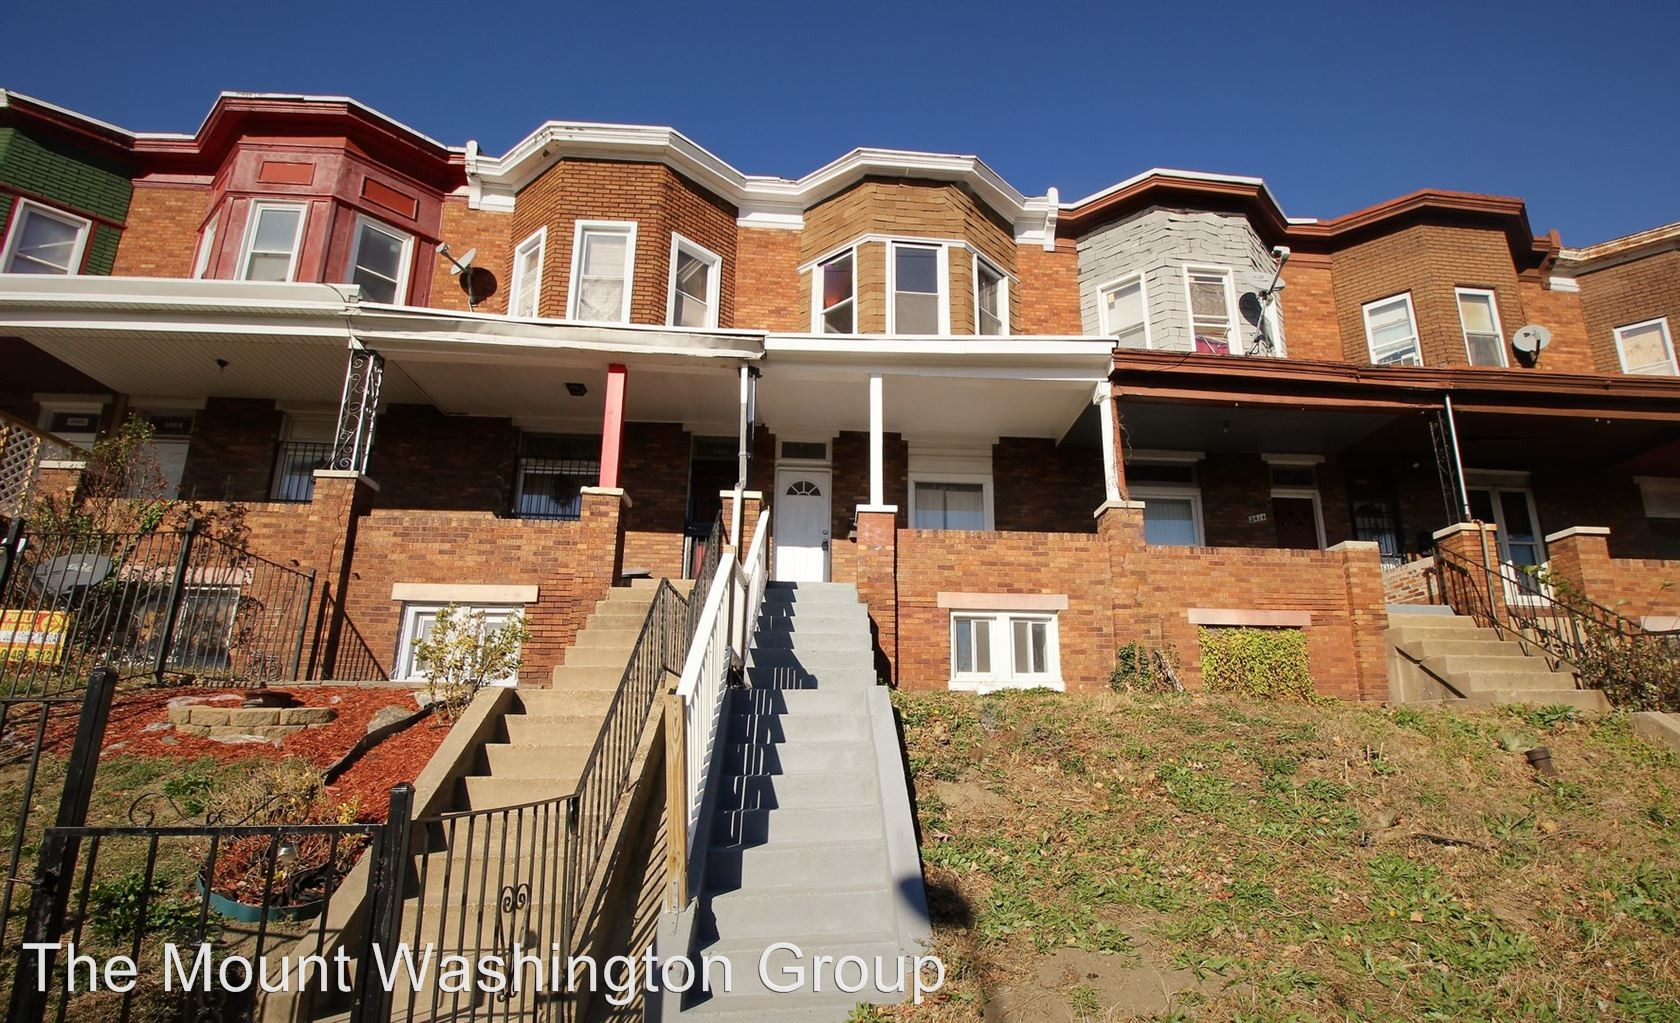 2416 Presbury St Baltimore Md 21216 3 Bedroom House For Rent For 1 150 Month Zumper